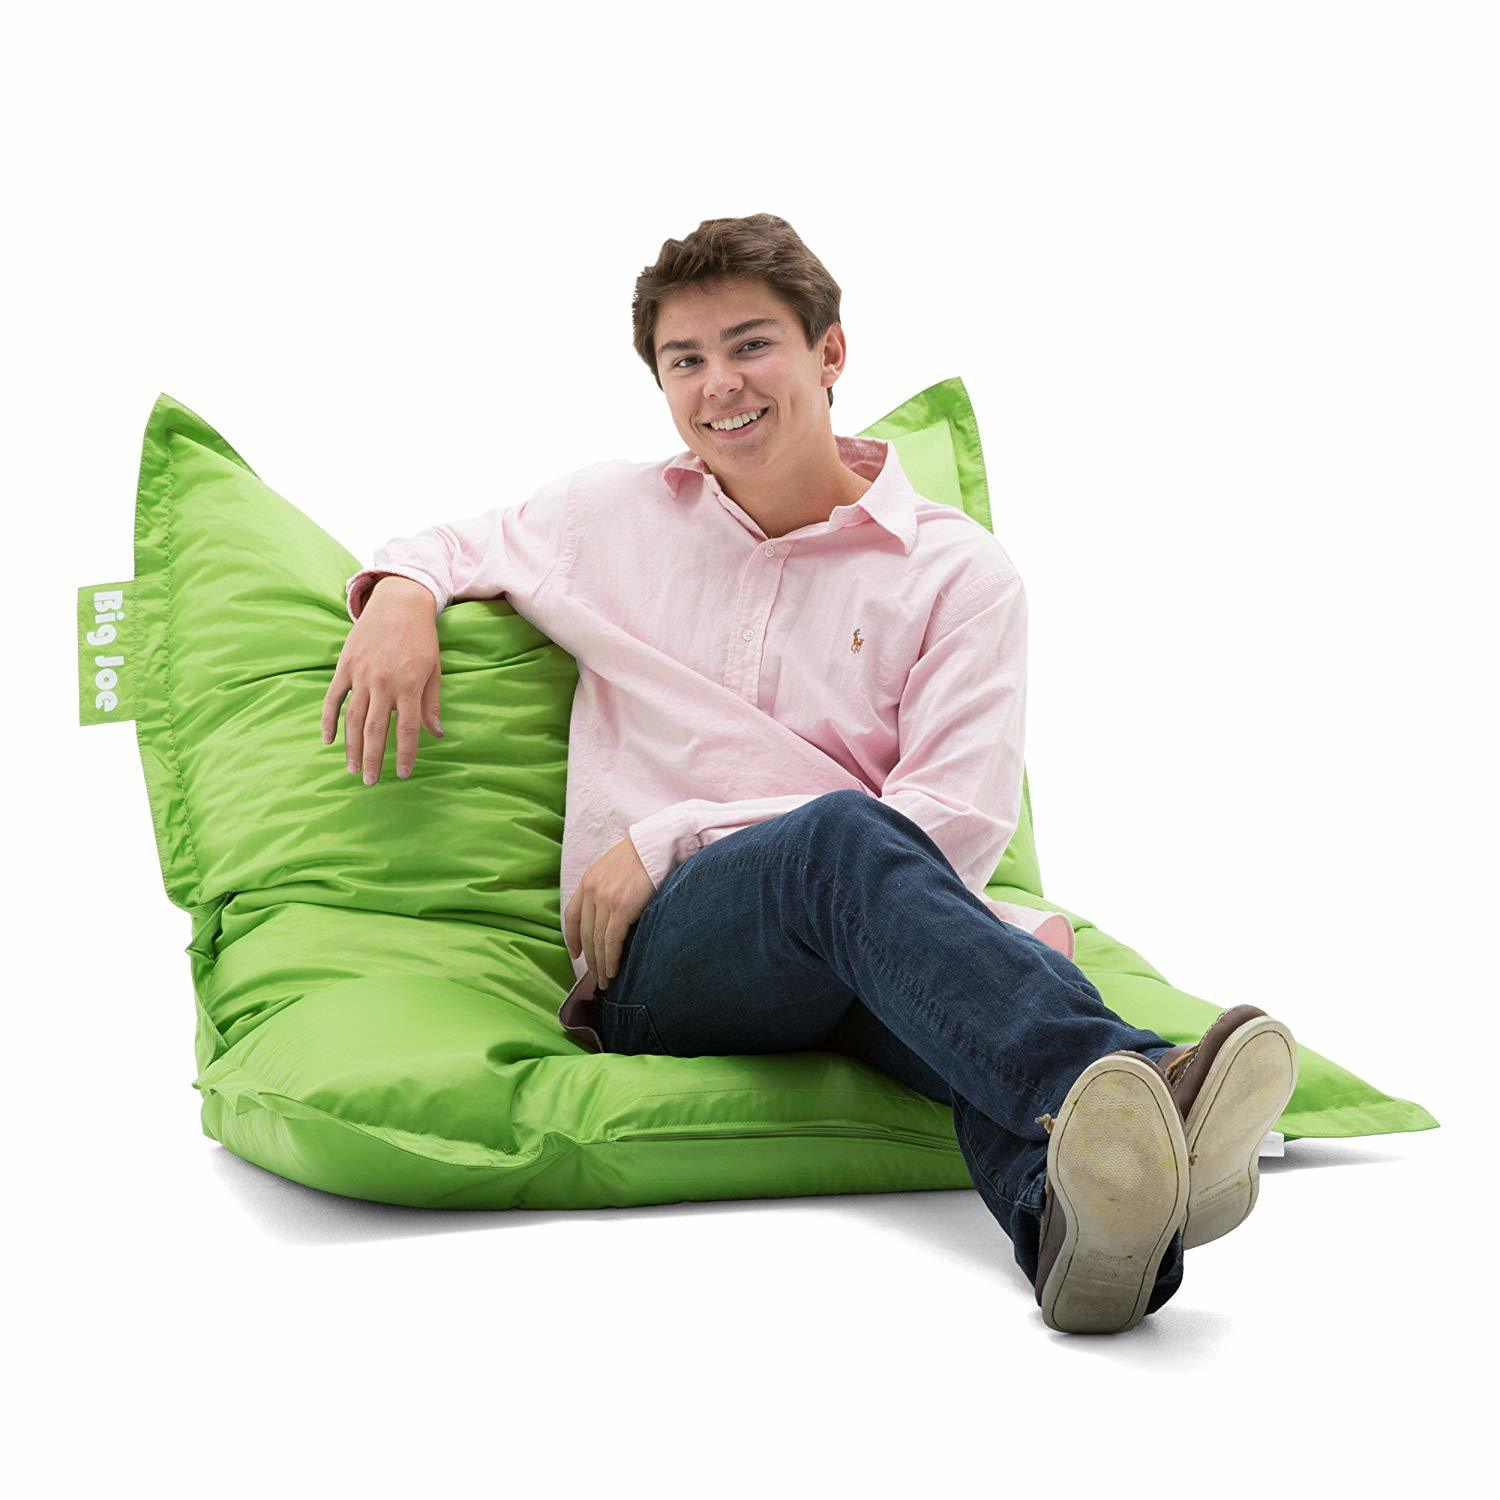 Bean Bag Chair Best Bean Bag Chairs Brands And Reviews Cuddly Home Advisors